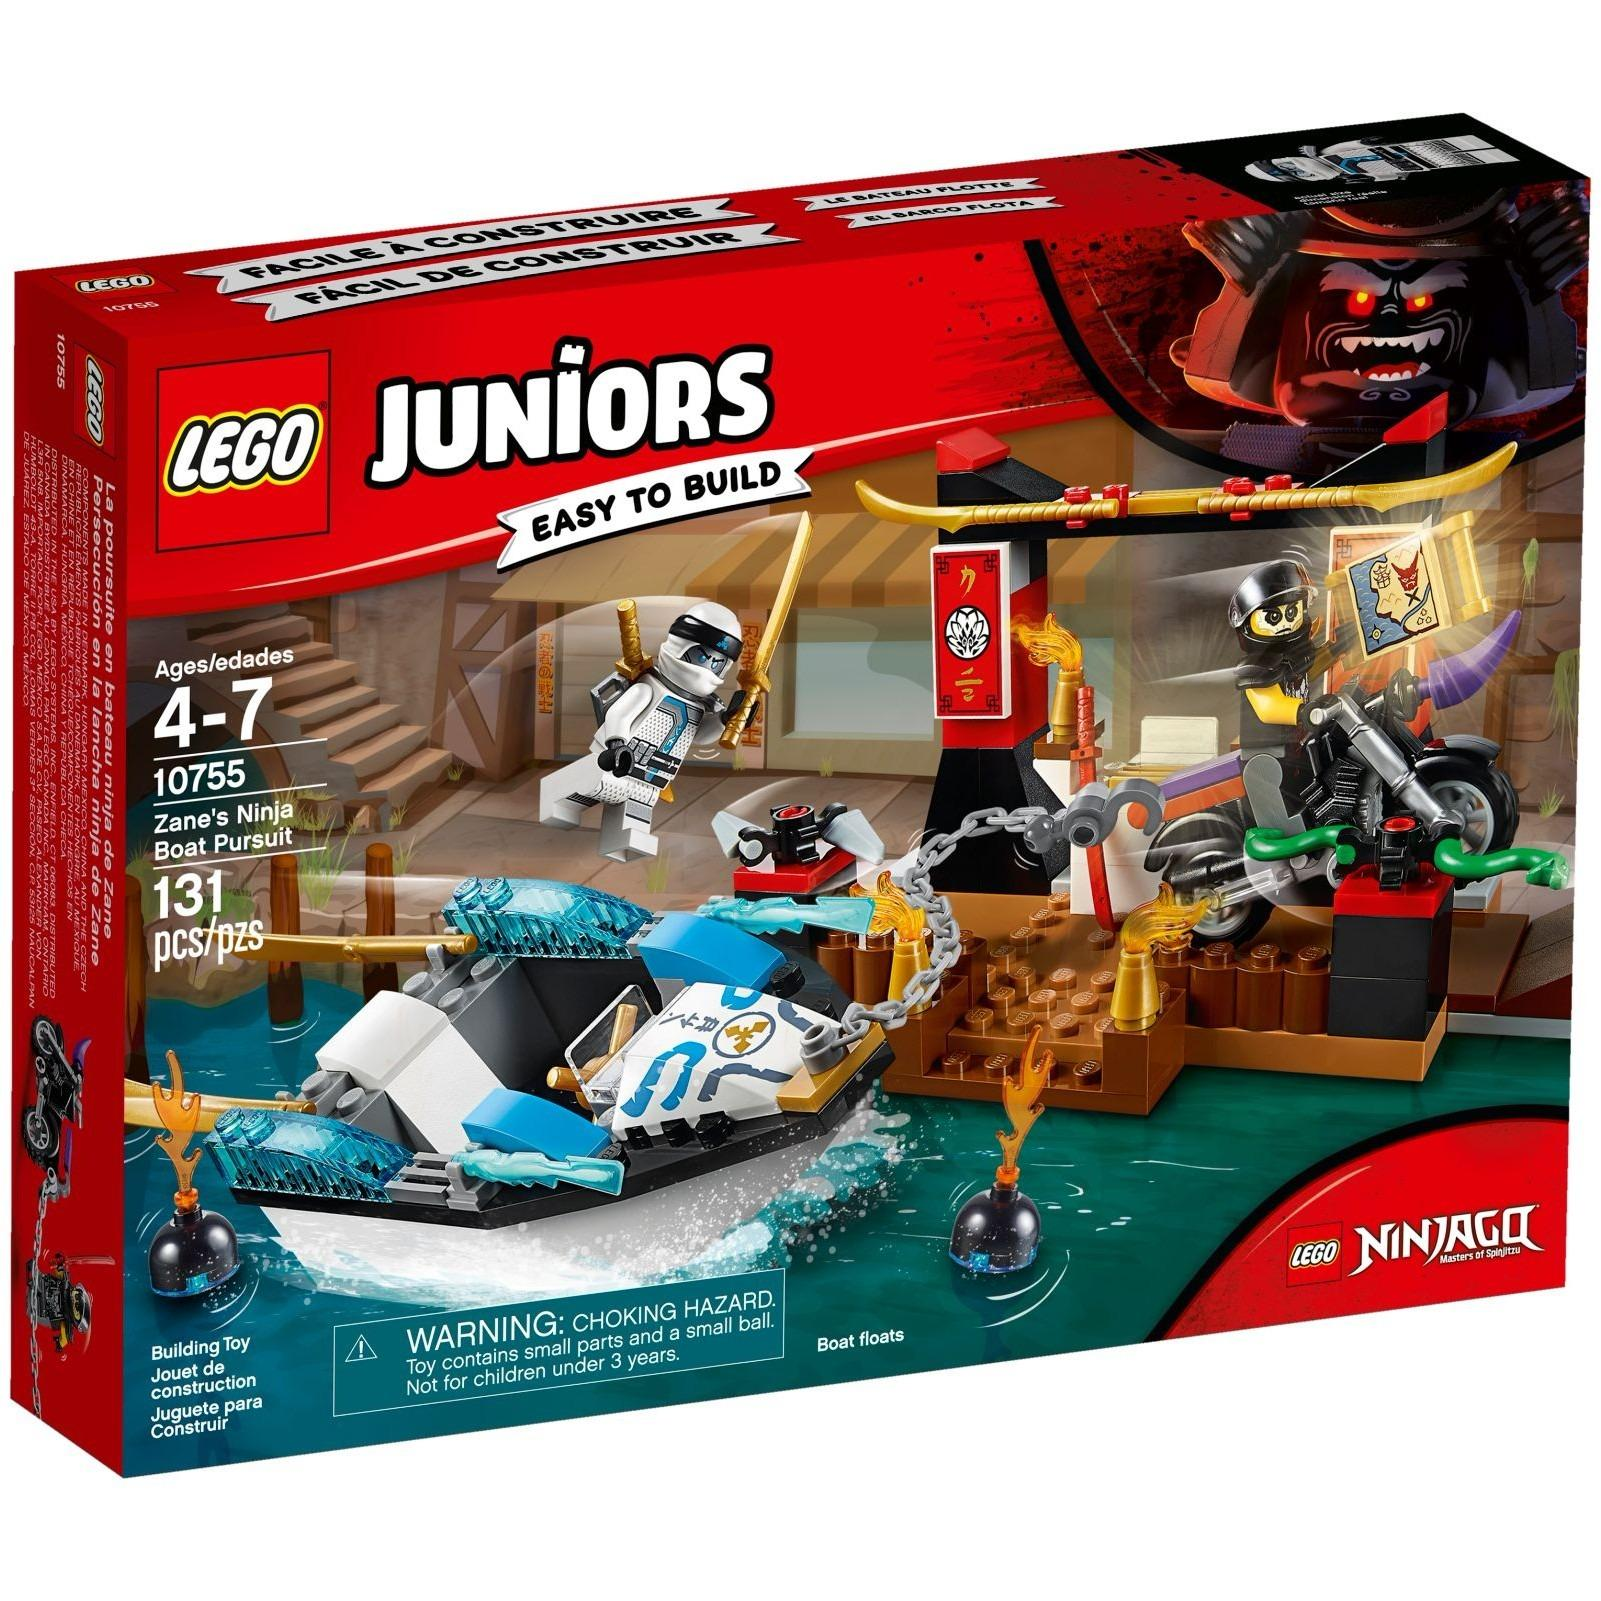 Buy Sell Cheapest Lego Juniors 10725 Best Quality Product Deals 10720 Police Helicopter Chase 10755 Zanes Ninja Boat Pursuit